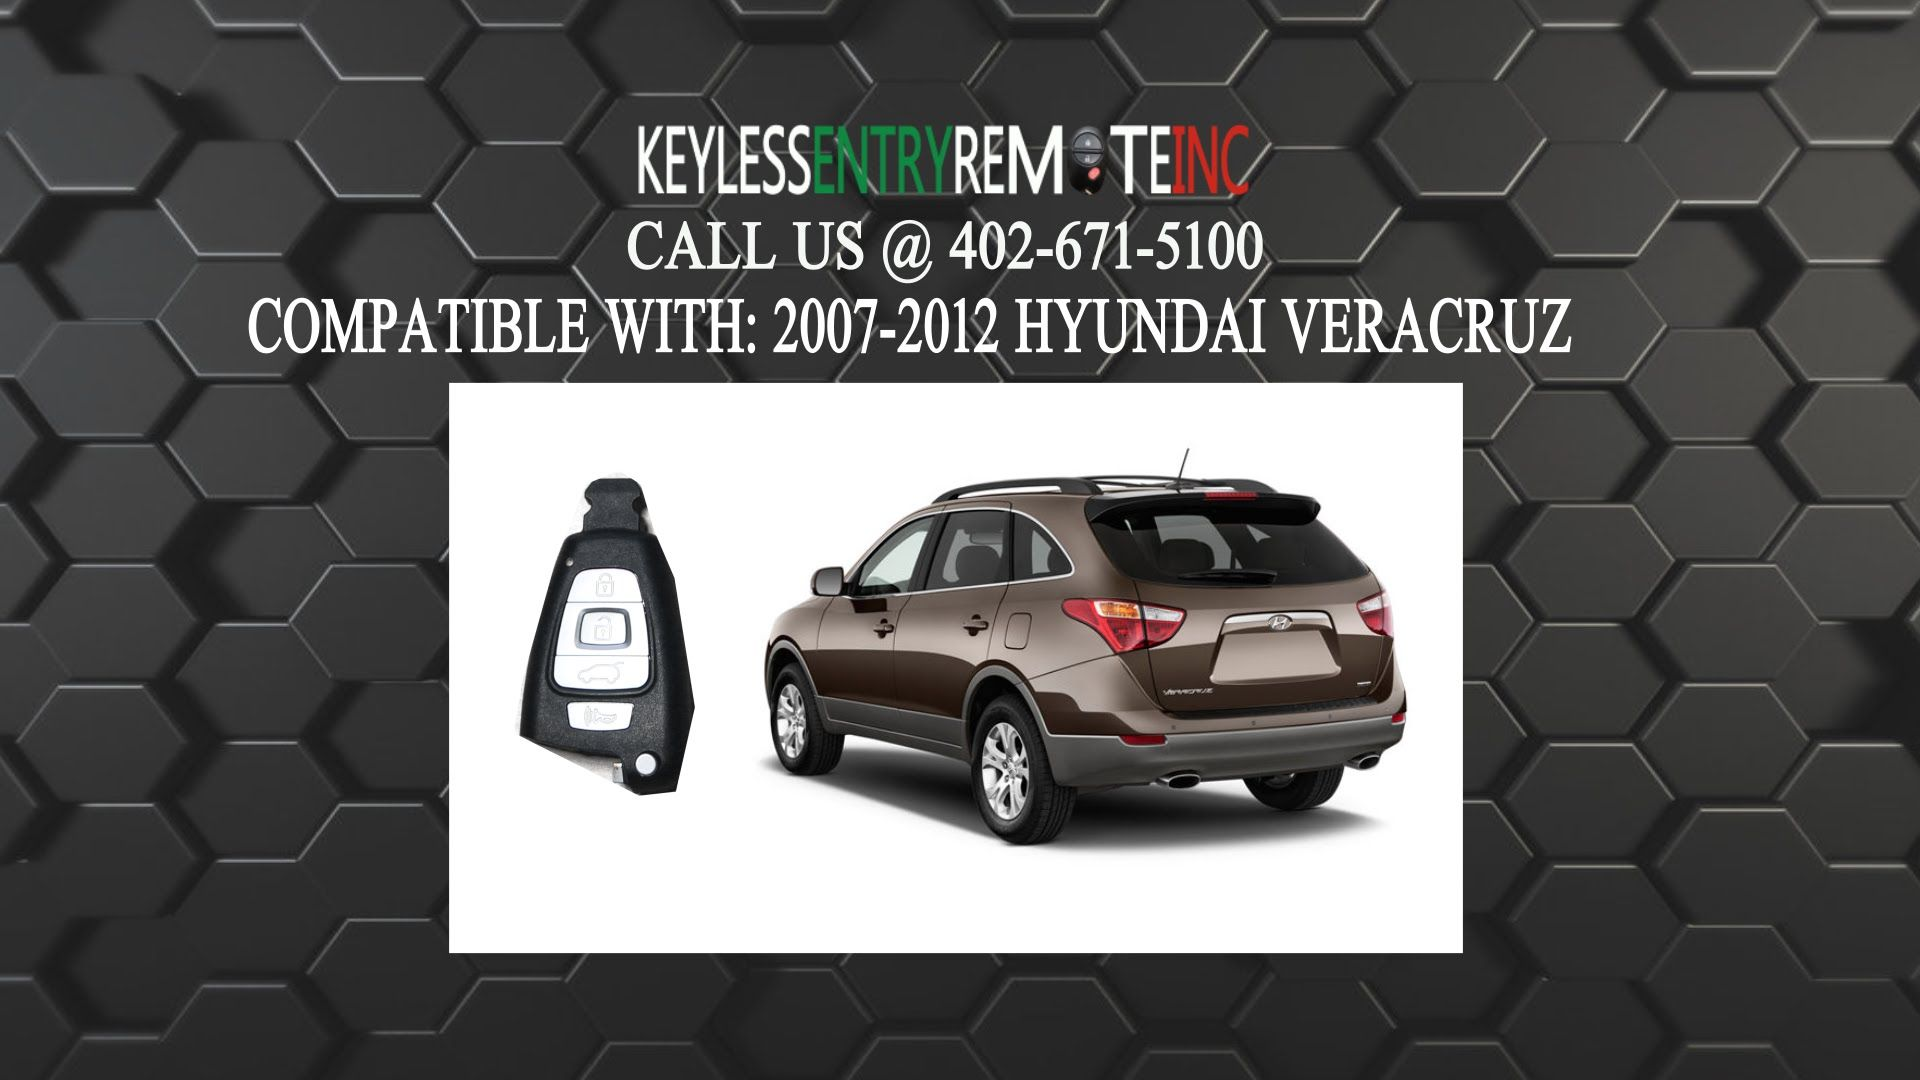 How To Replace Hyundai Veracruz Key Fob Battery 2007 2008 2009 2010 2017